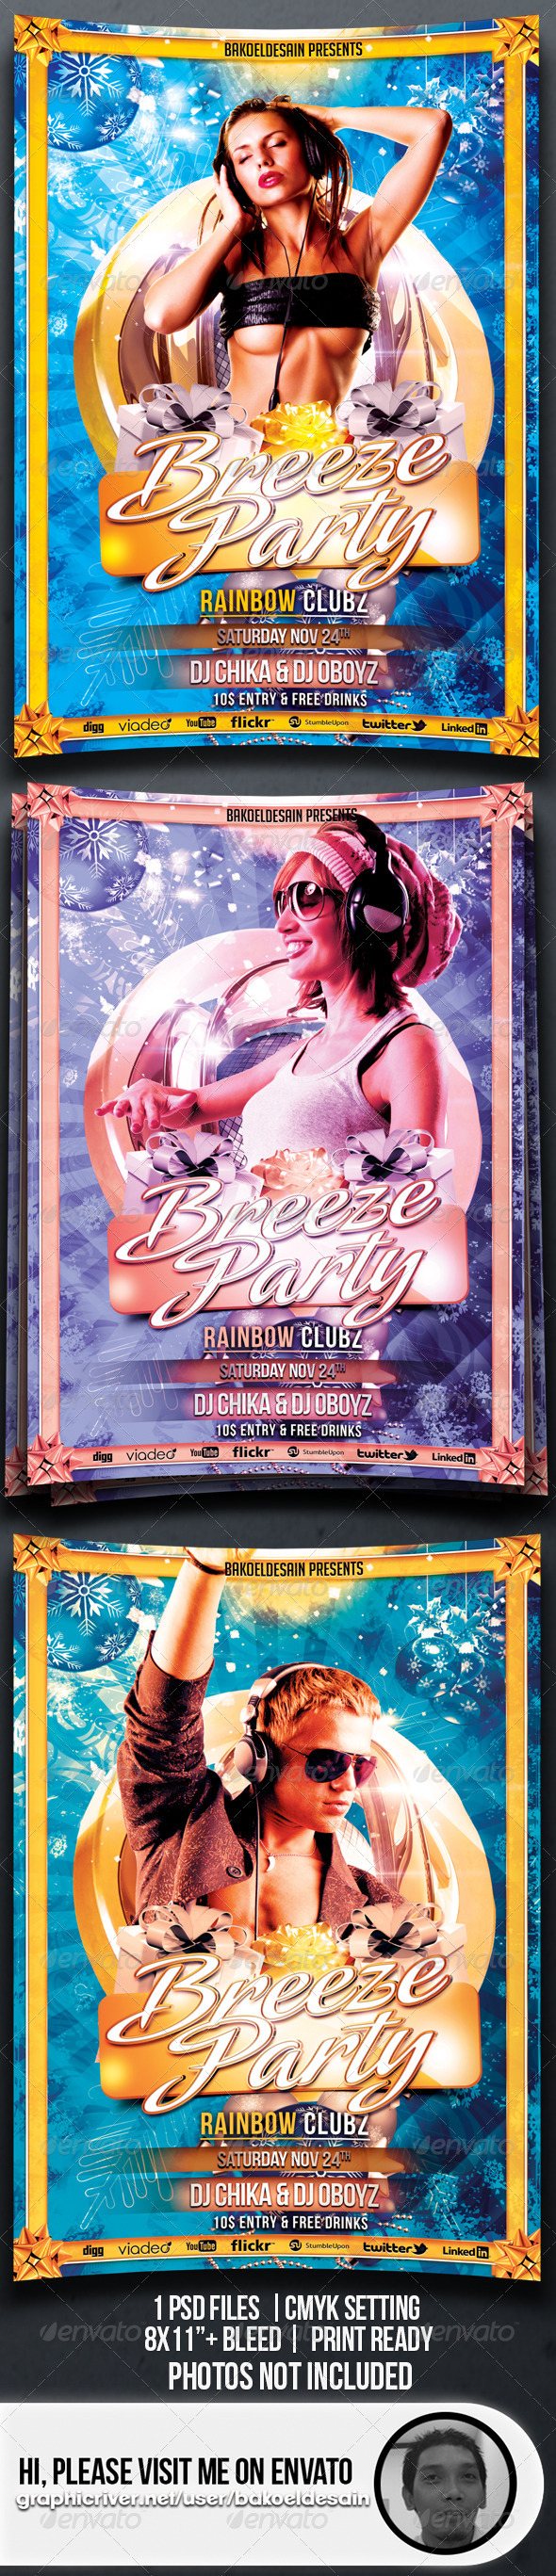 Breeze Party Flyer - Clubs & Parties Events